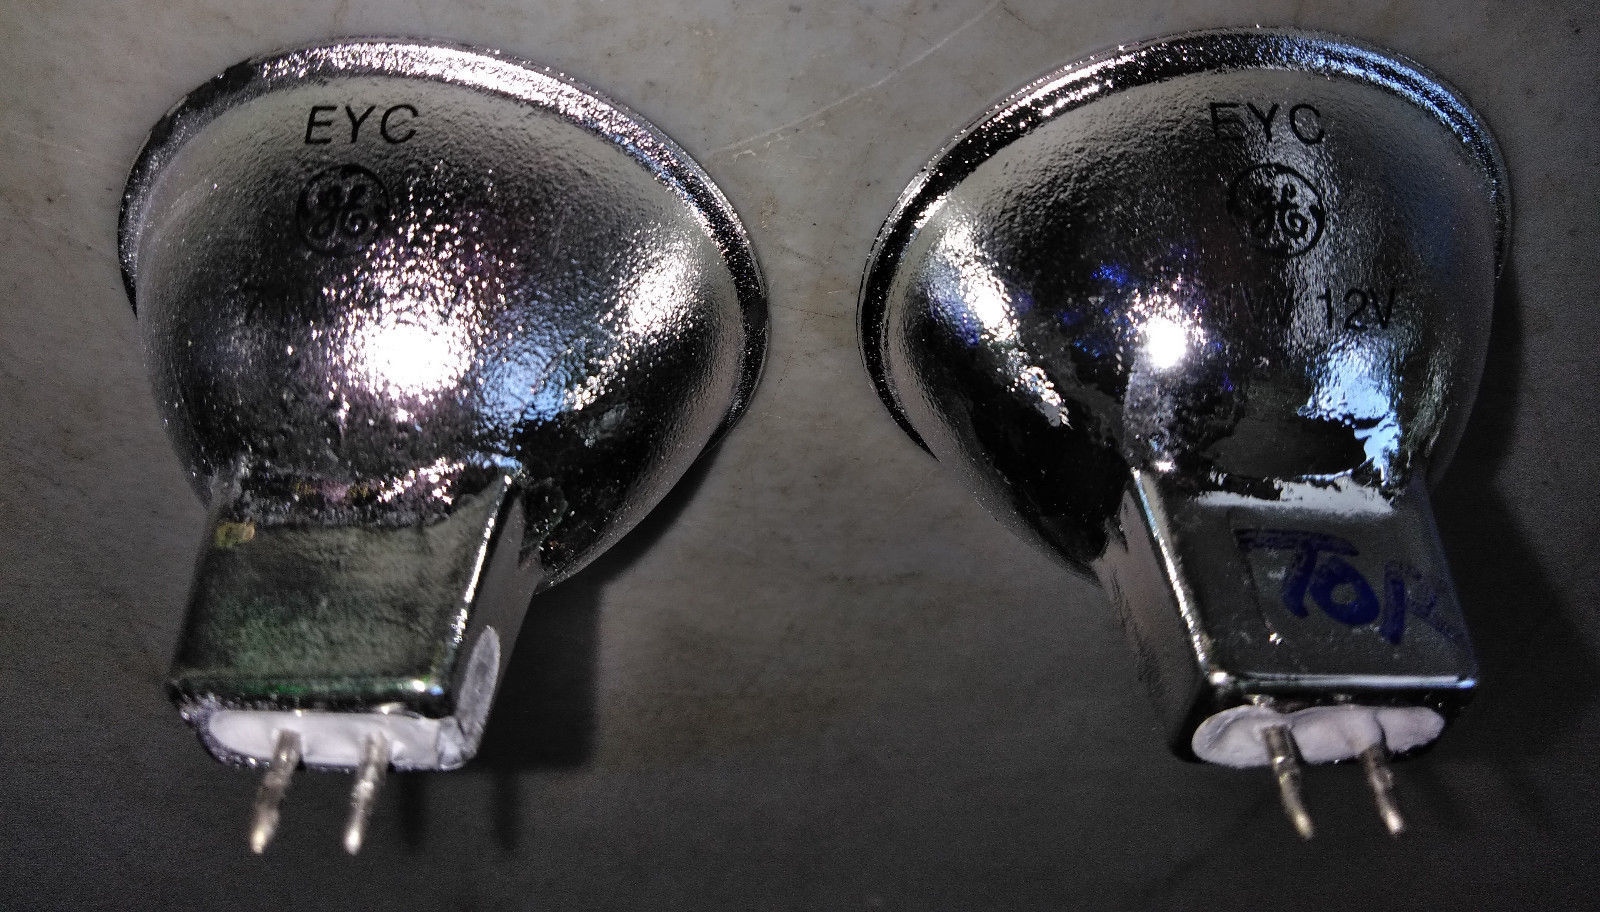 Primary image for 8PP07  PAIR OF LIGHT BULBS, GE EYC 12V 71WATT, POOL LIGHTS, VERY GOOD CONDITION